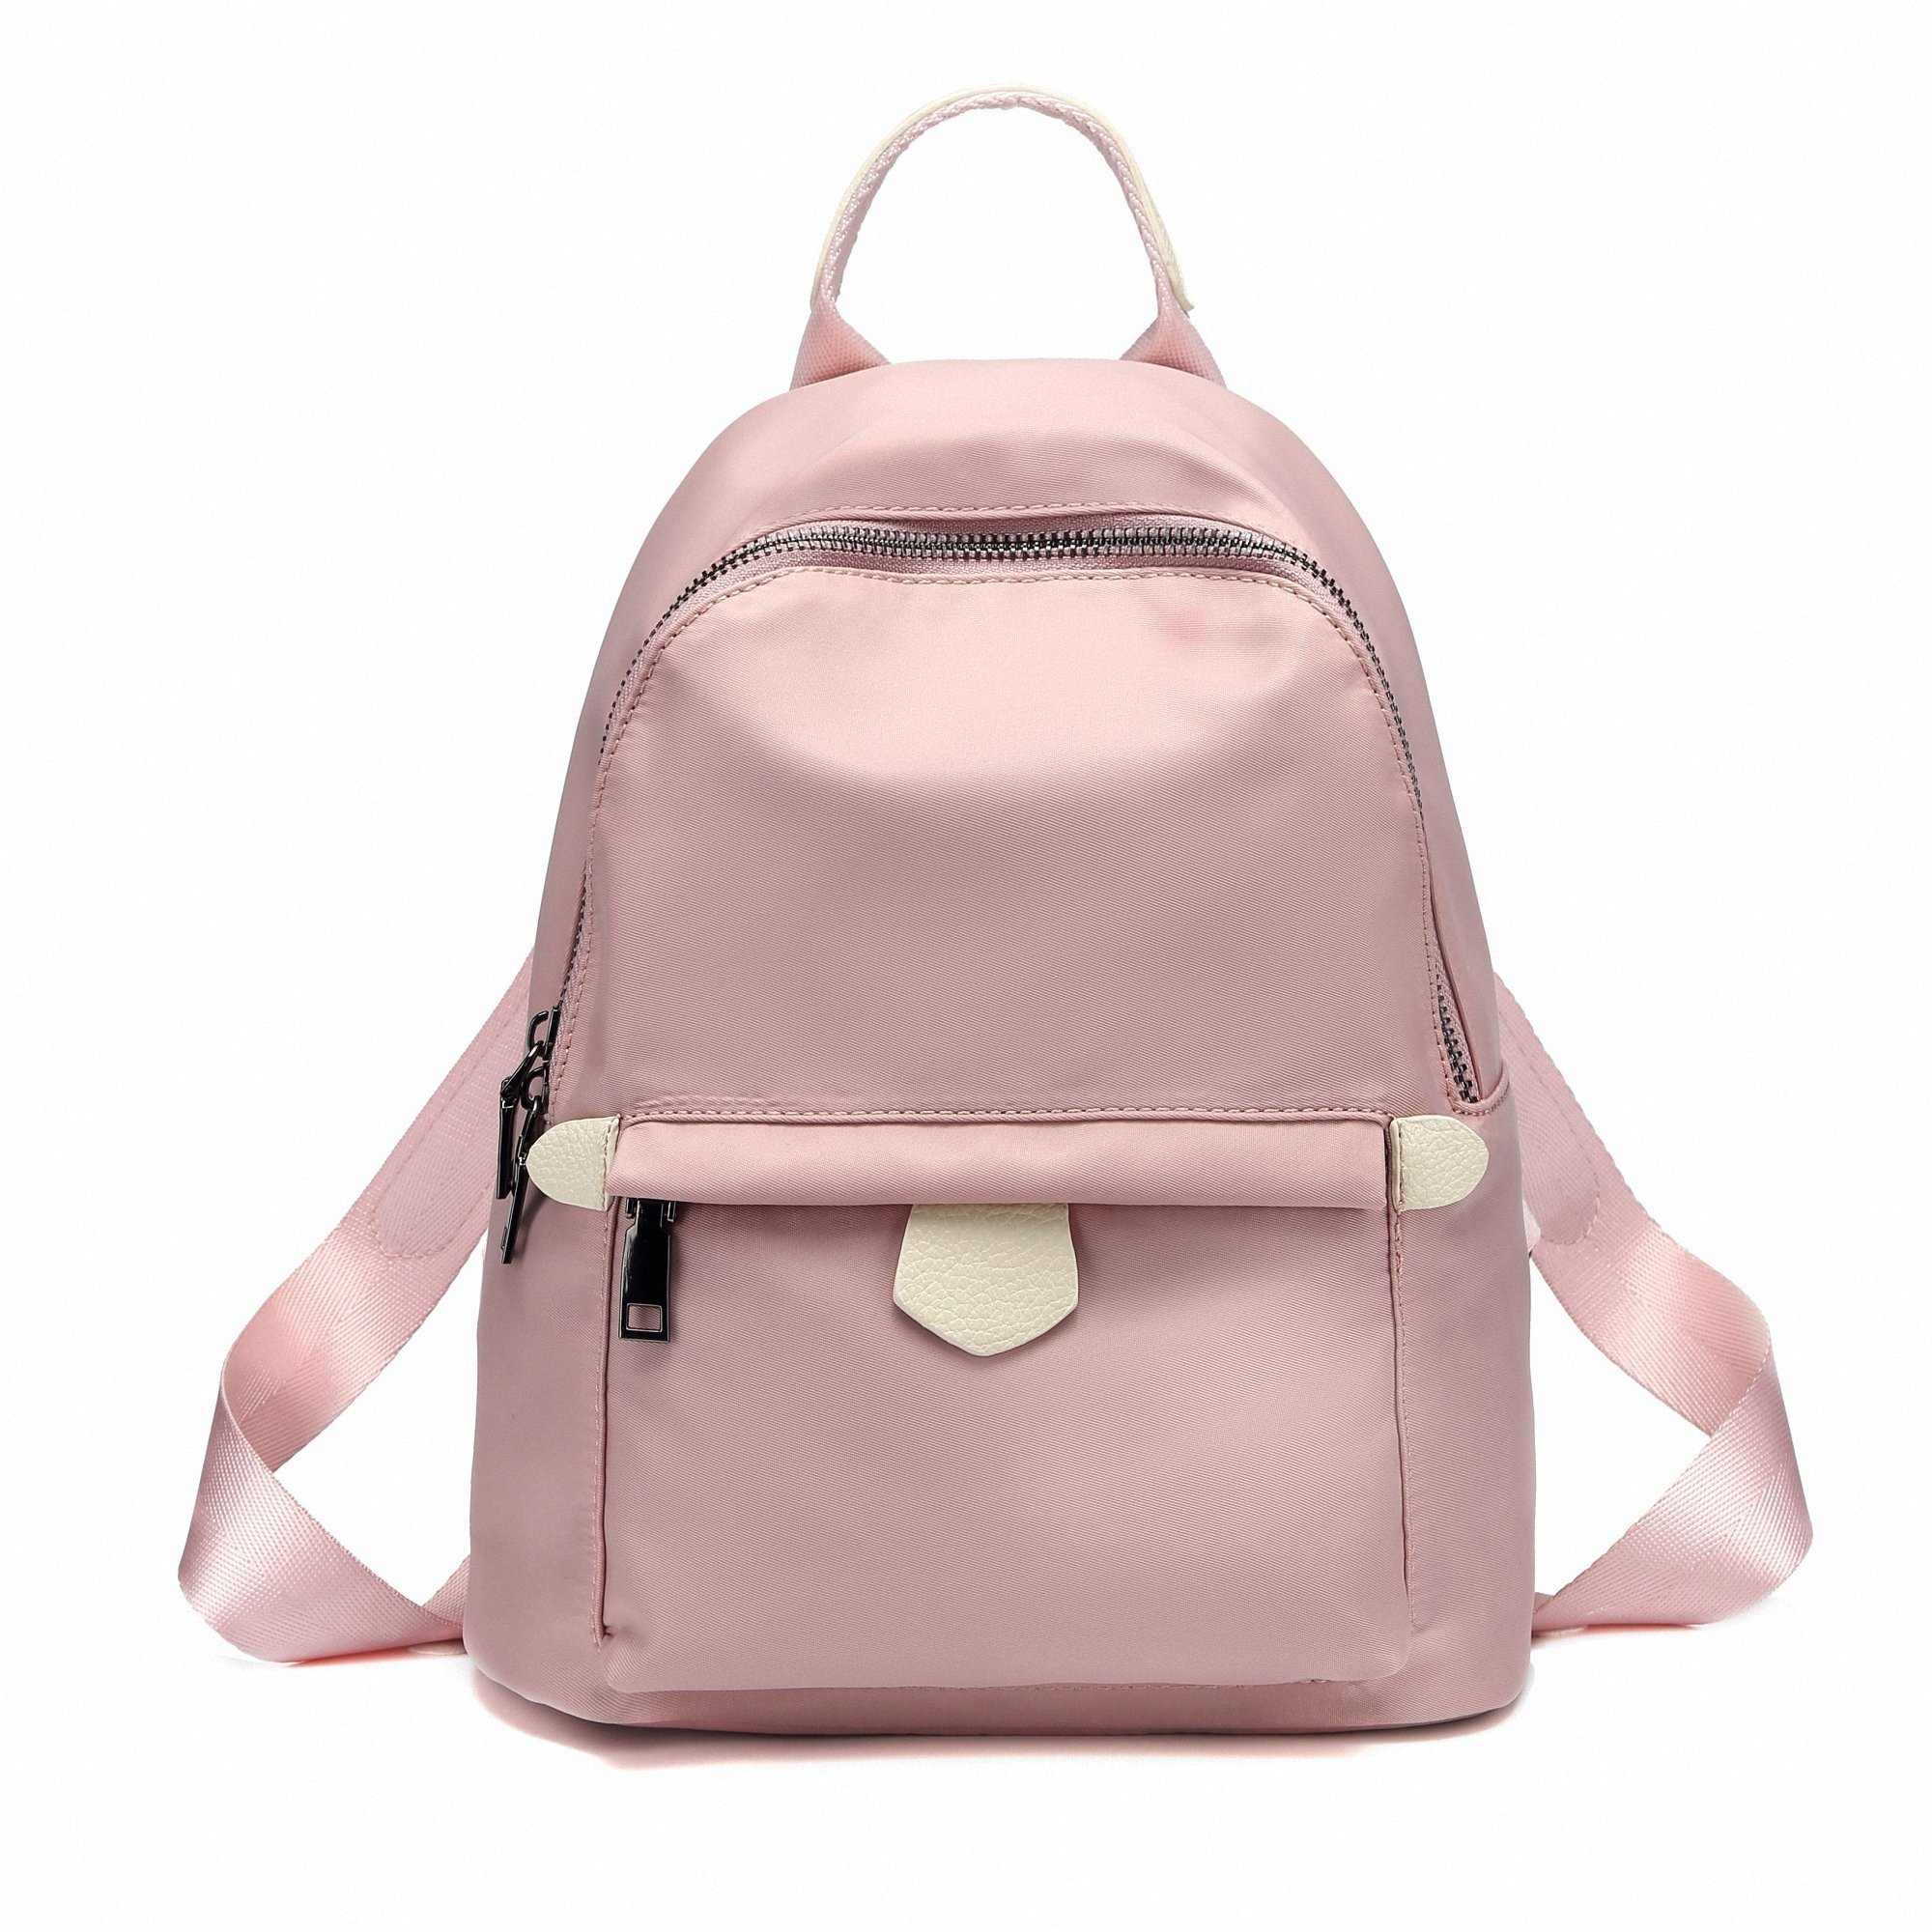 AOTIAN Women Backpacks Purse - Small Handy Bag Casual Daypack For Girls 10 Liters Pink